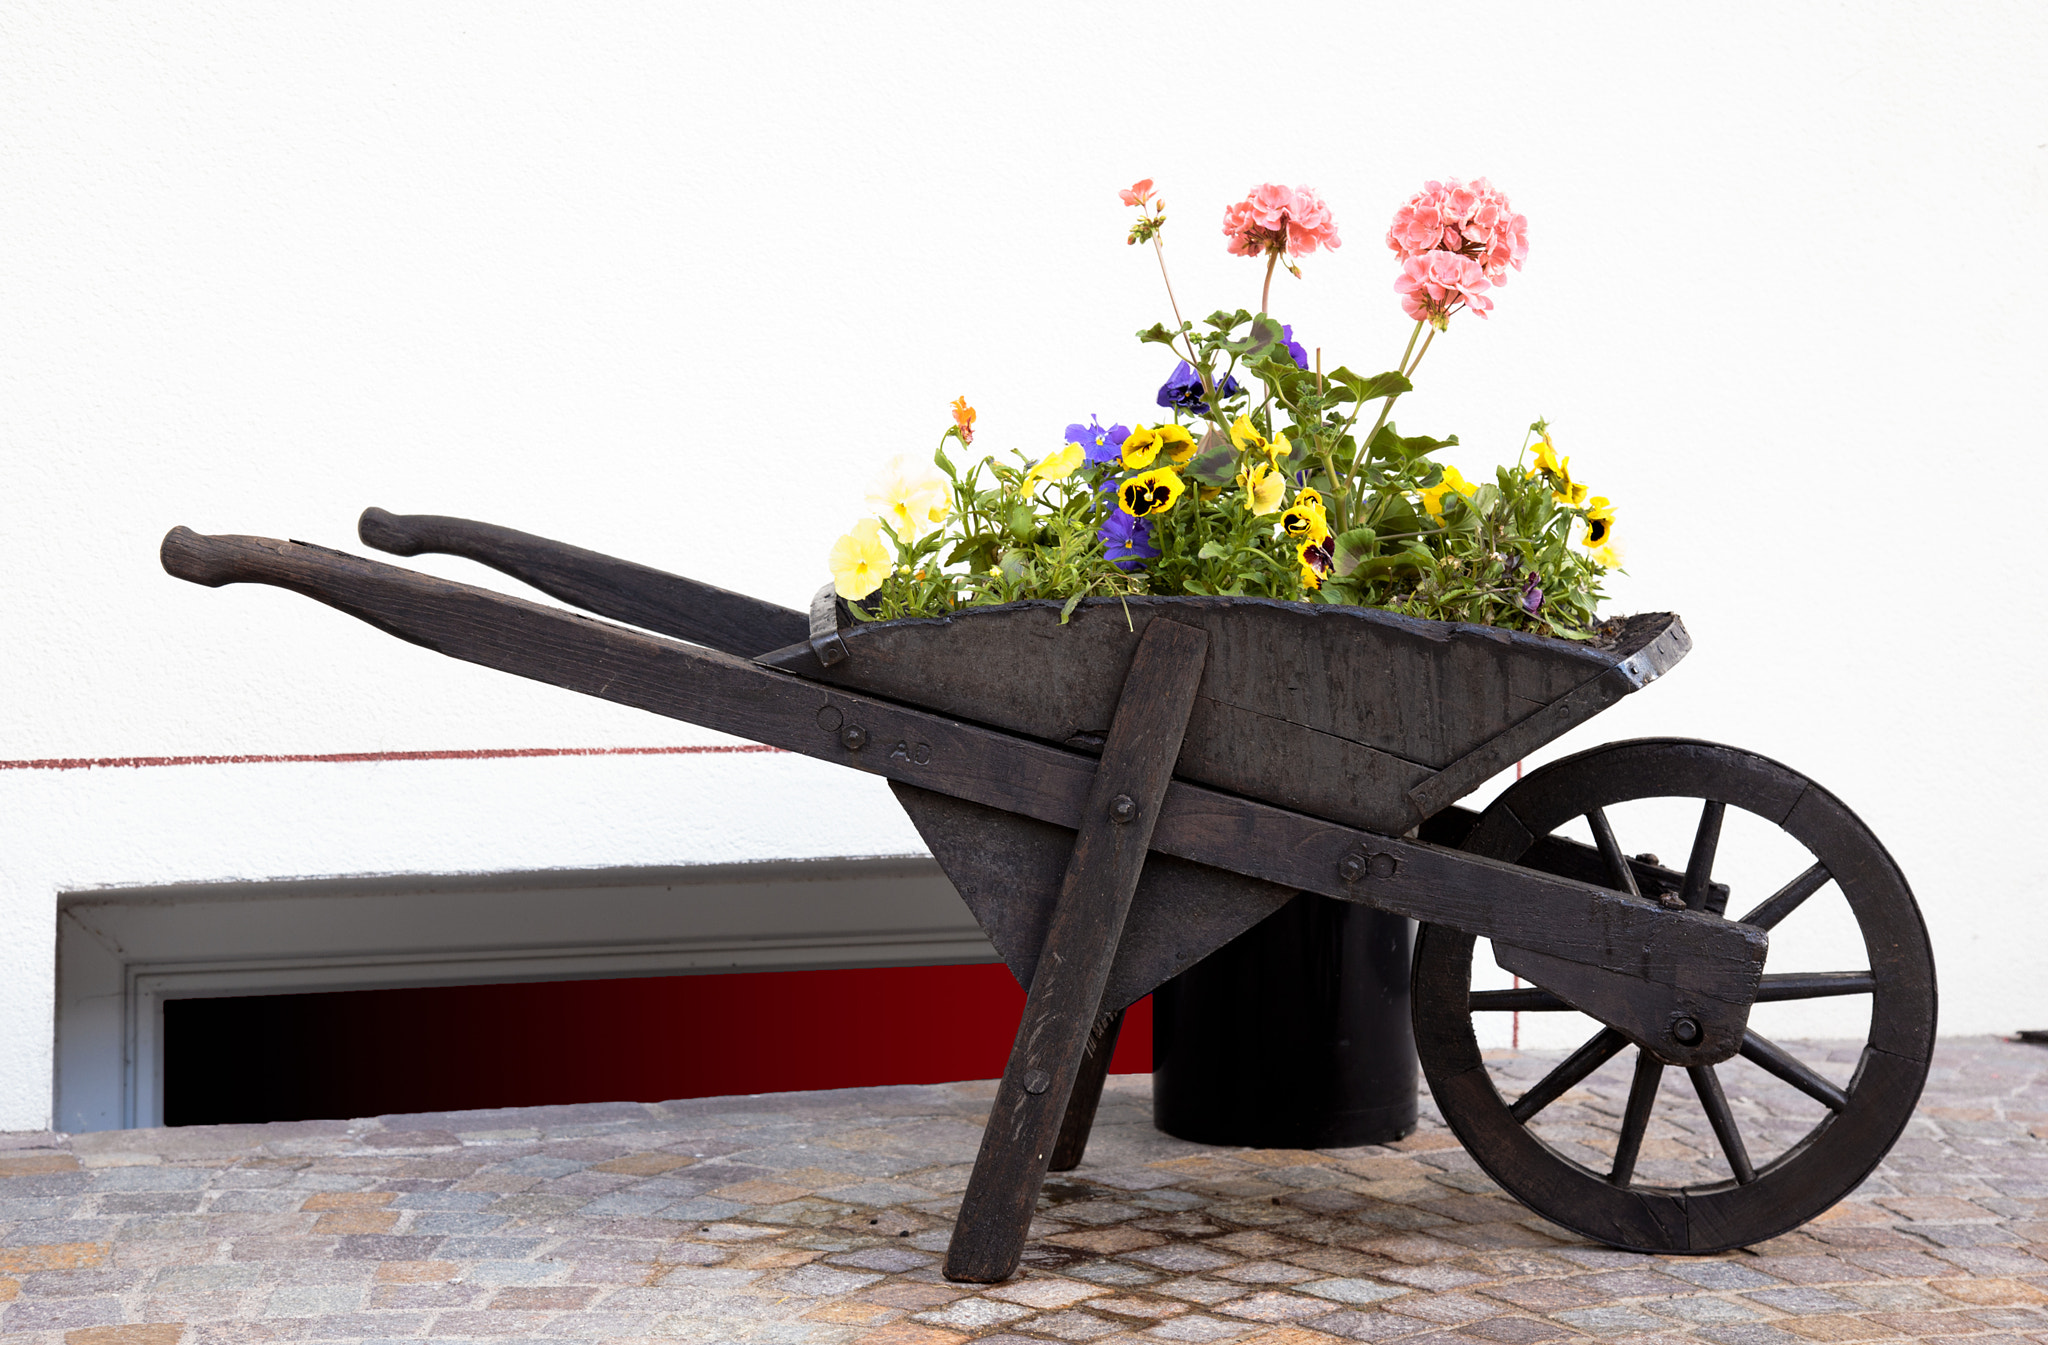 Photograph Wheelbarow With Flowers by Uri Baruch on 500px